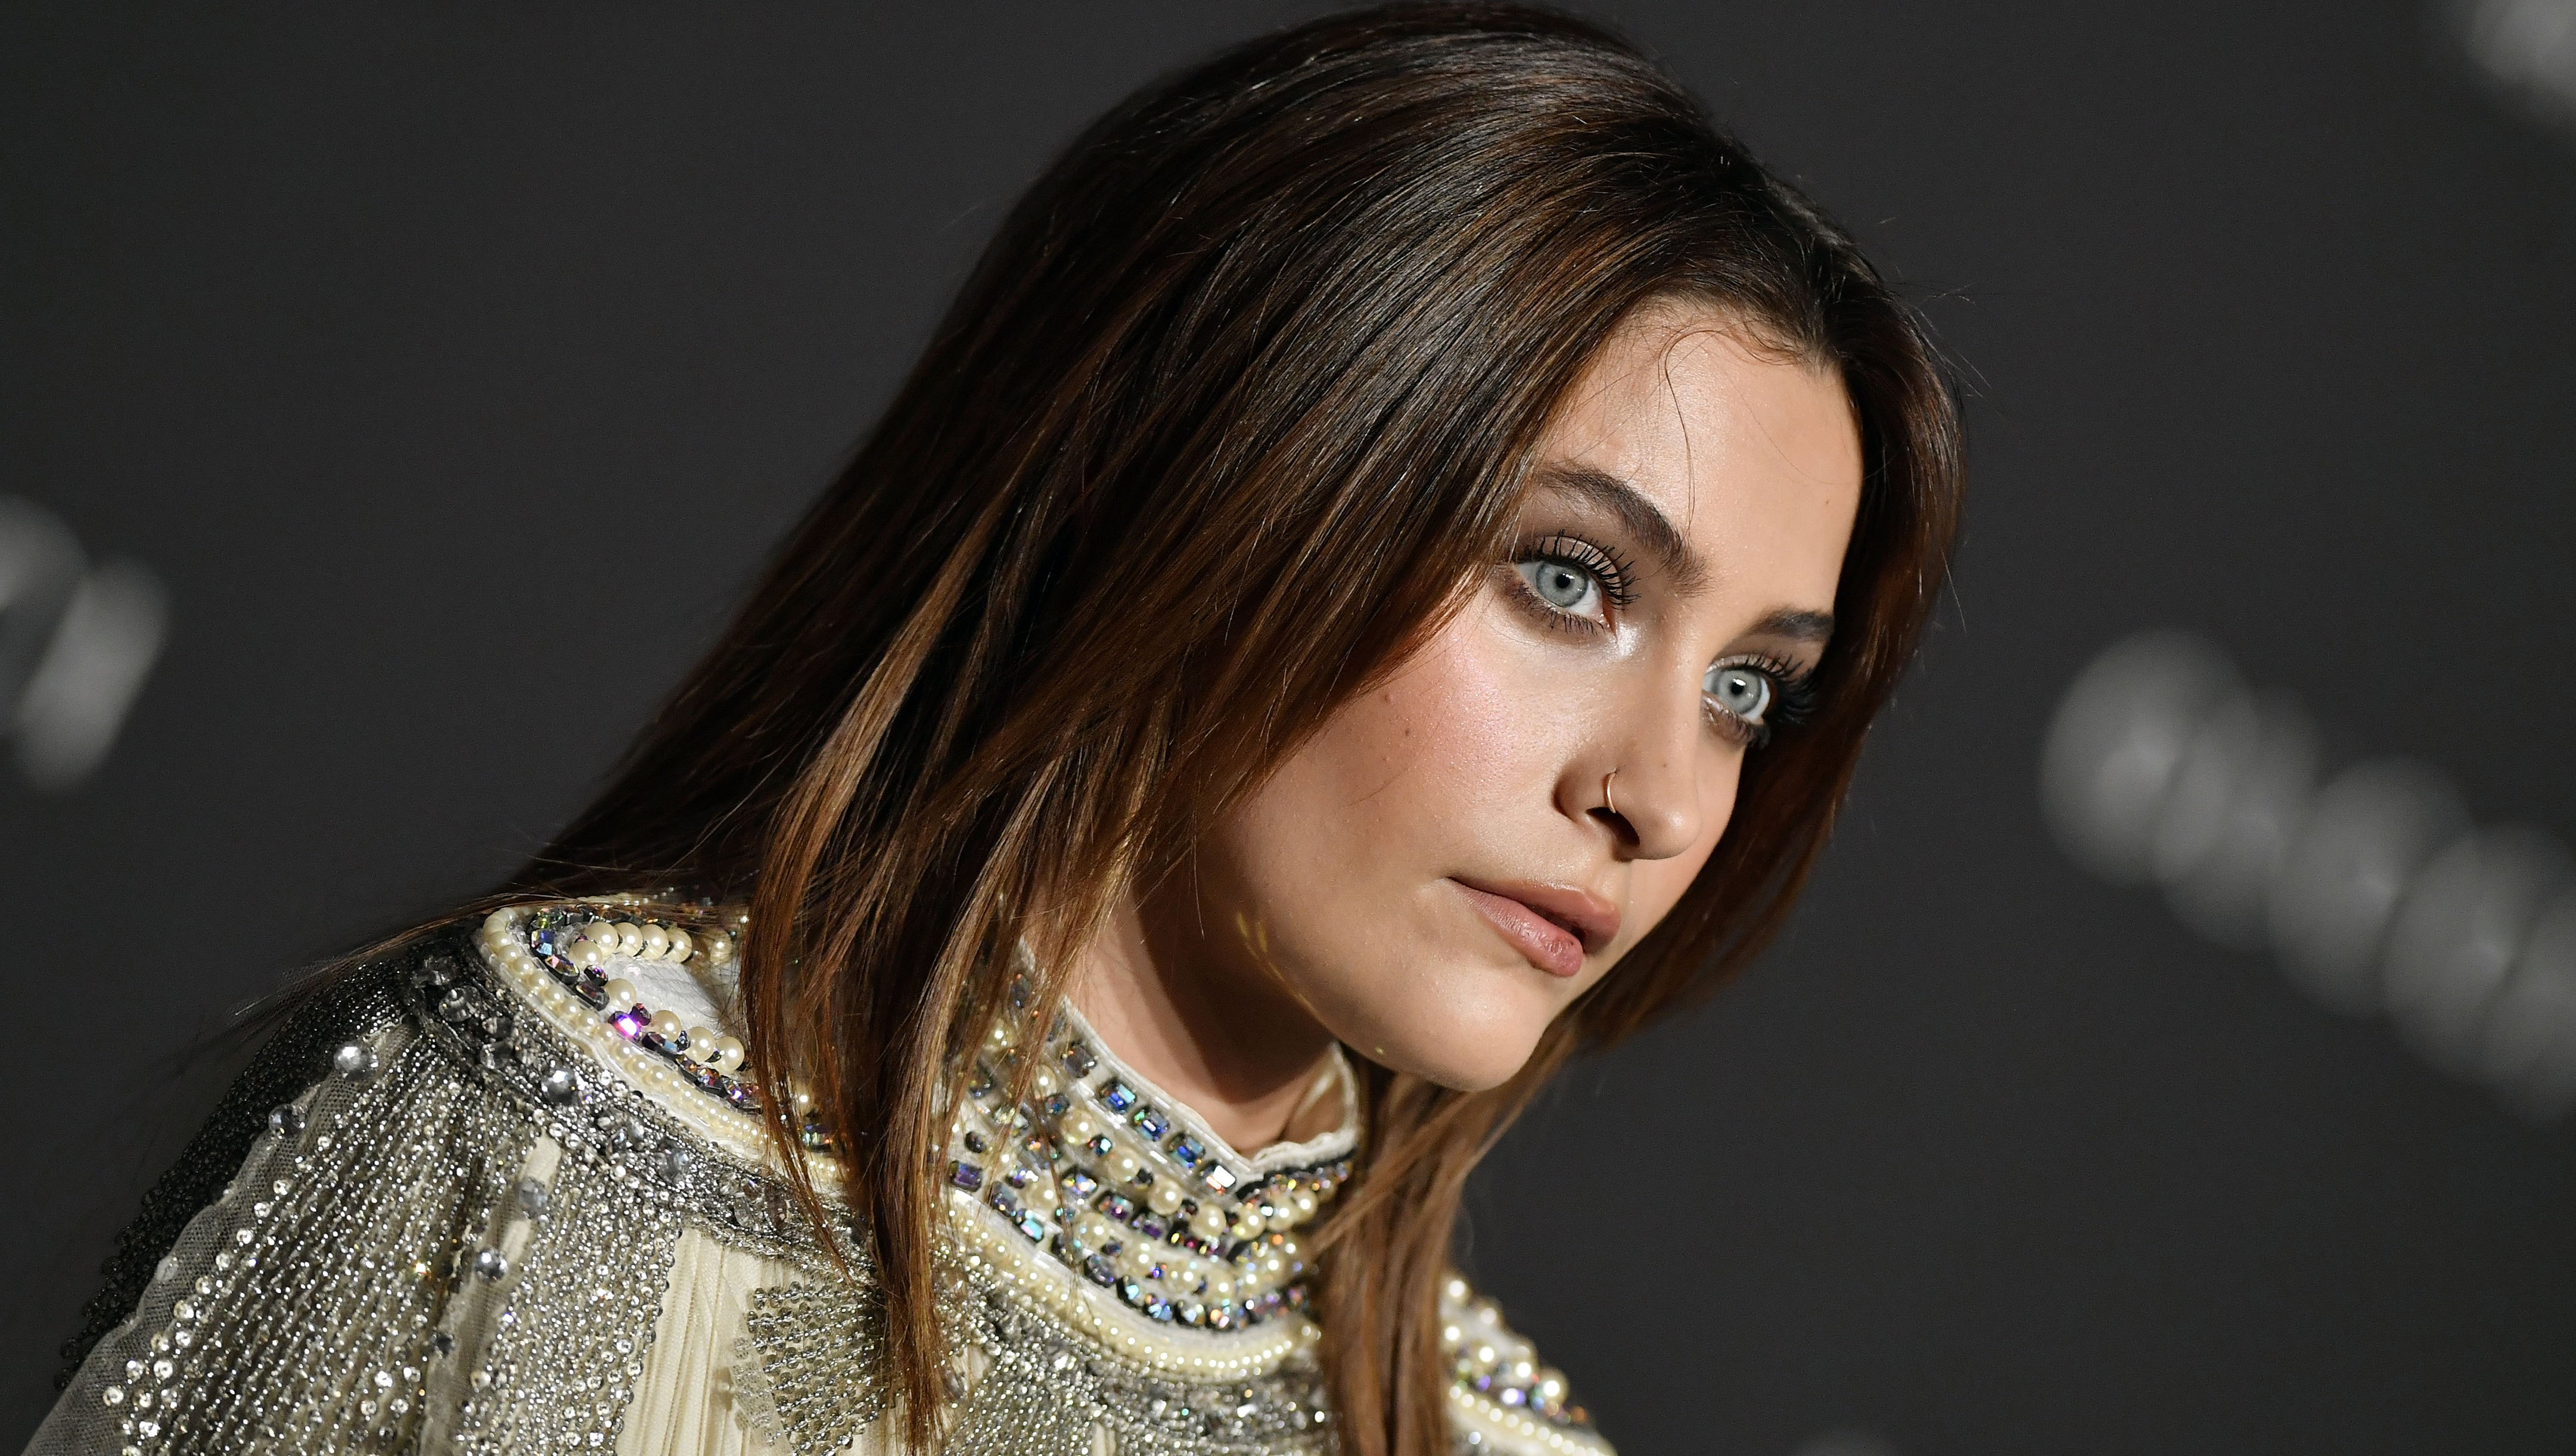 Paris Jackson Hospitalized After Suicide Attempt: Report